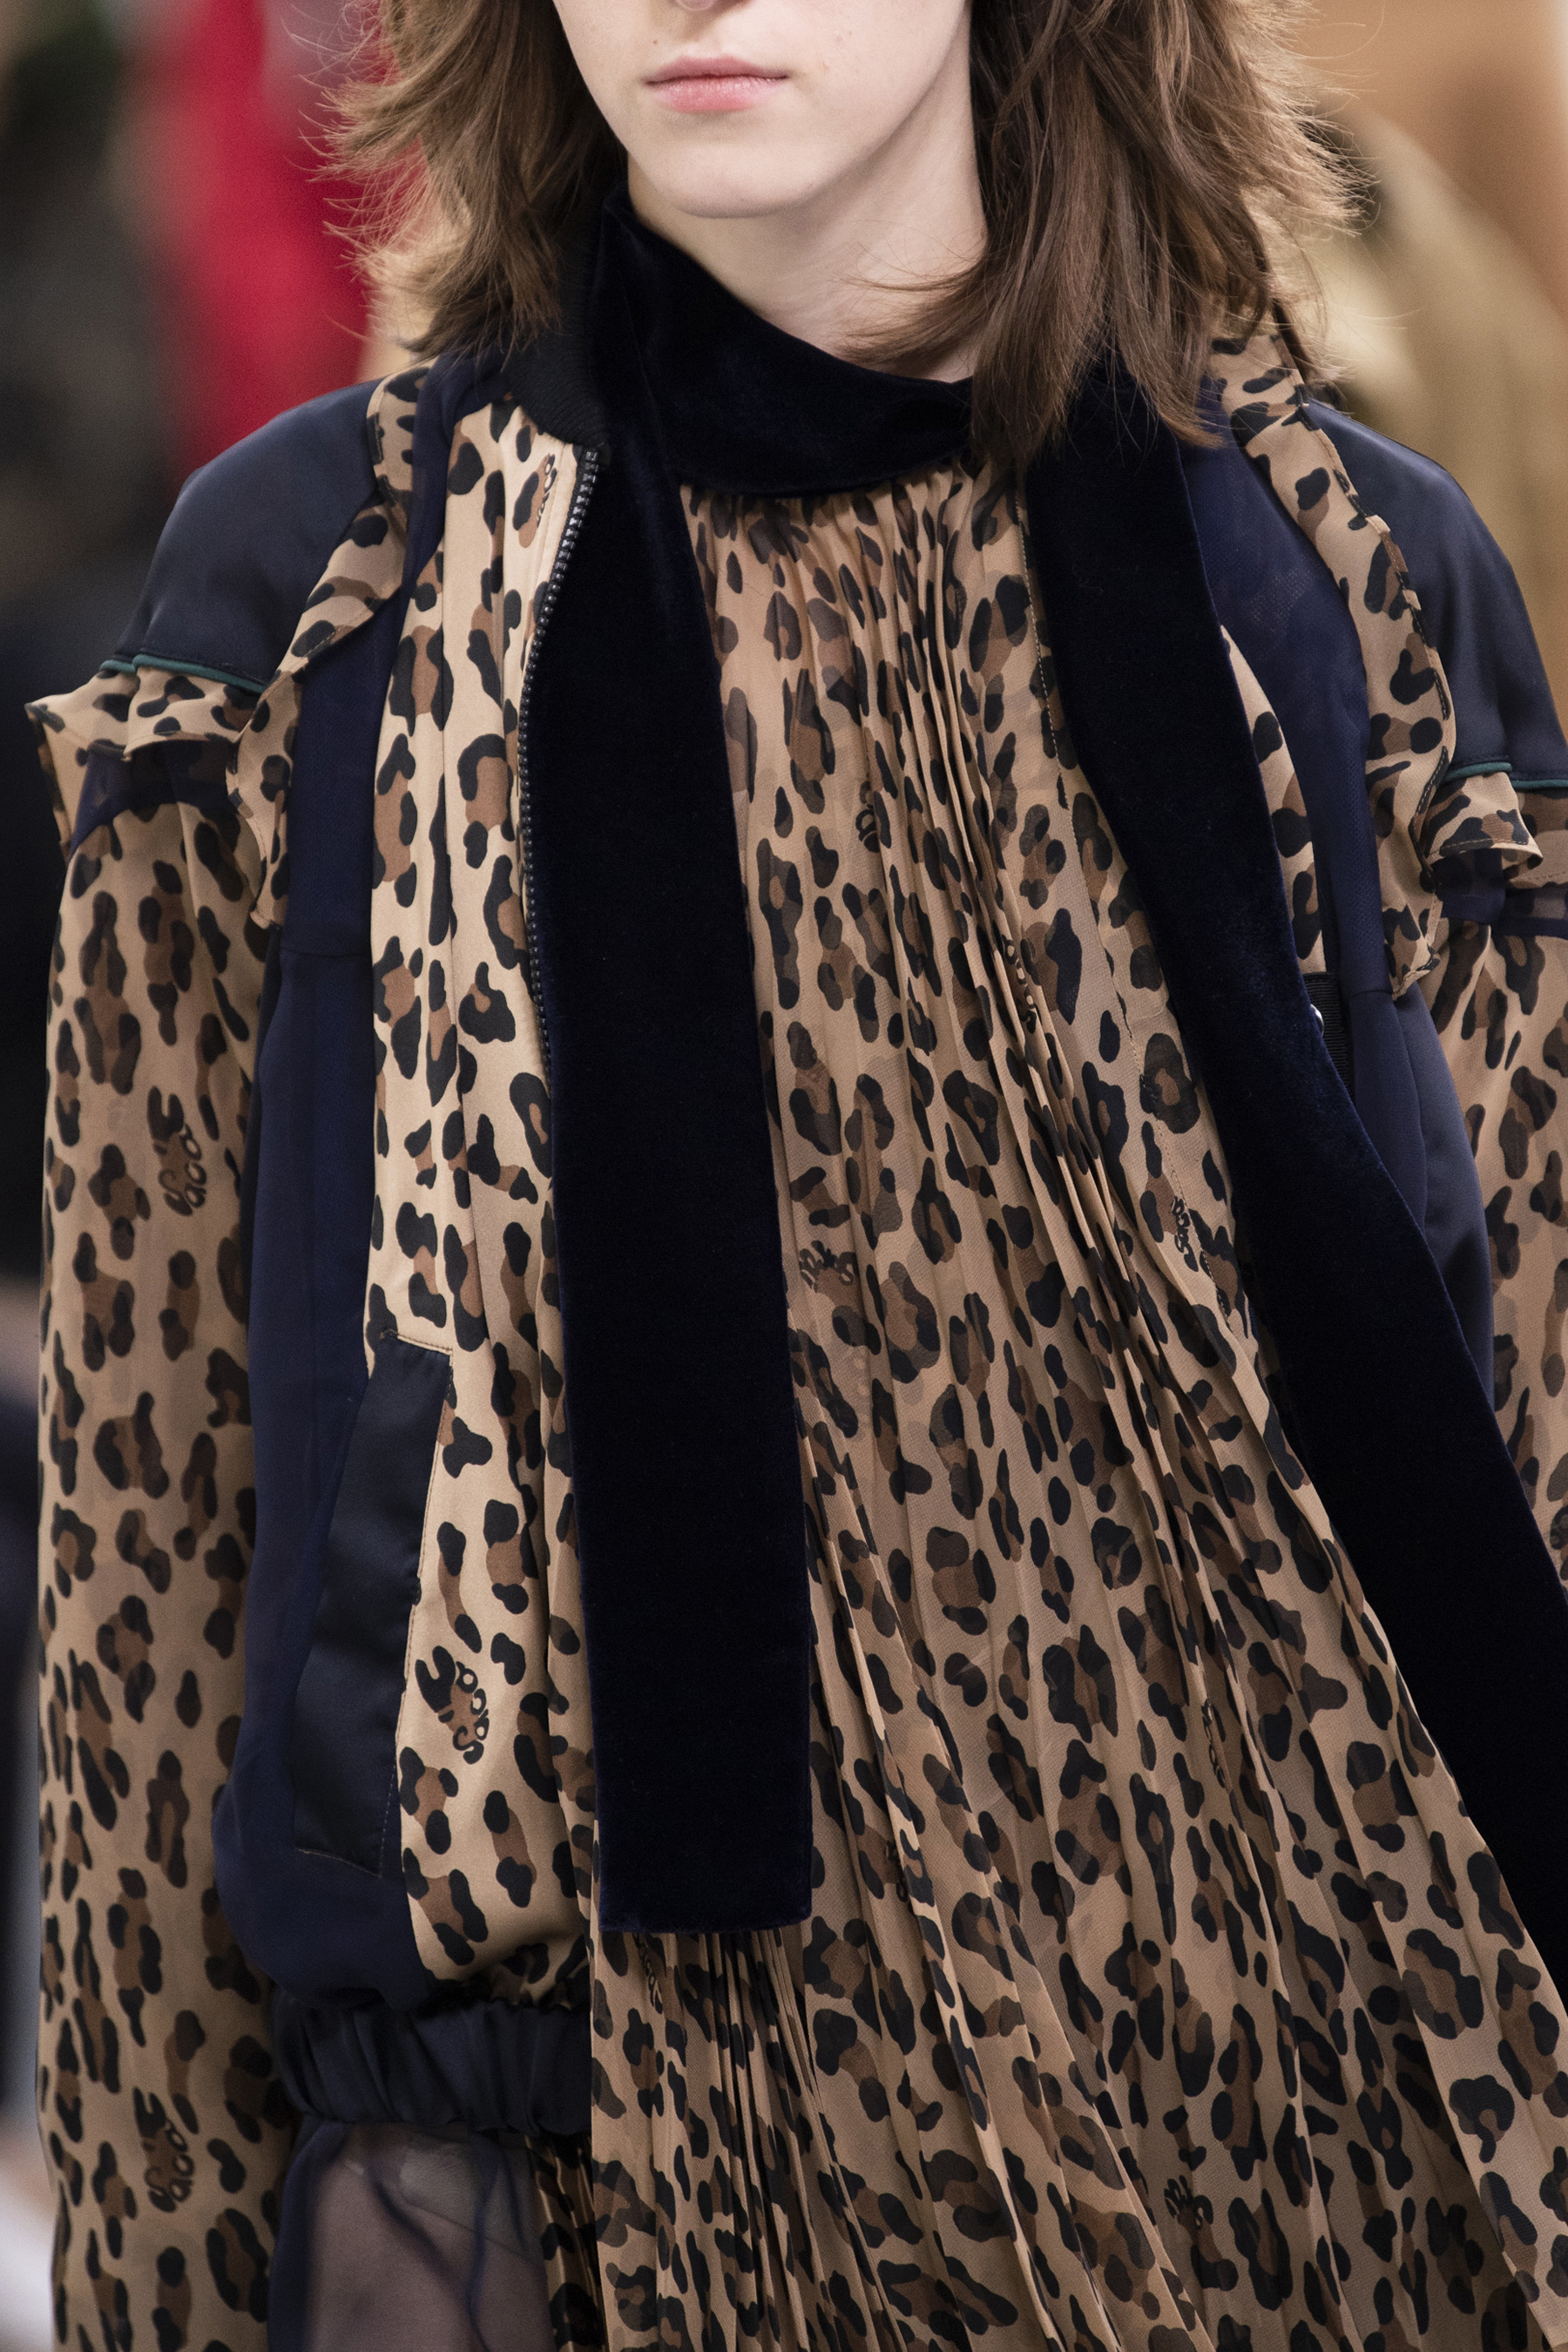 Sacai Fall 2019 Men's Fashion Show Details